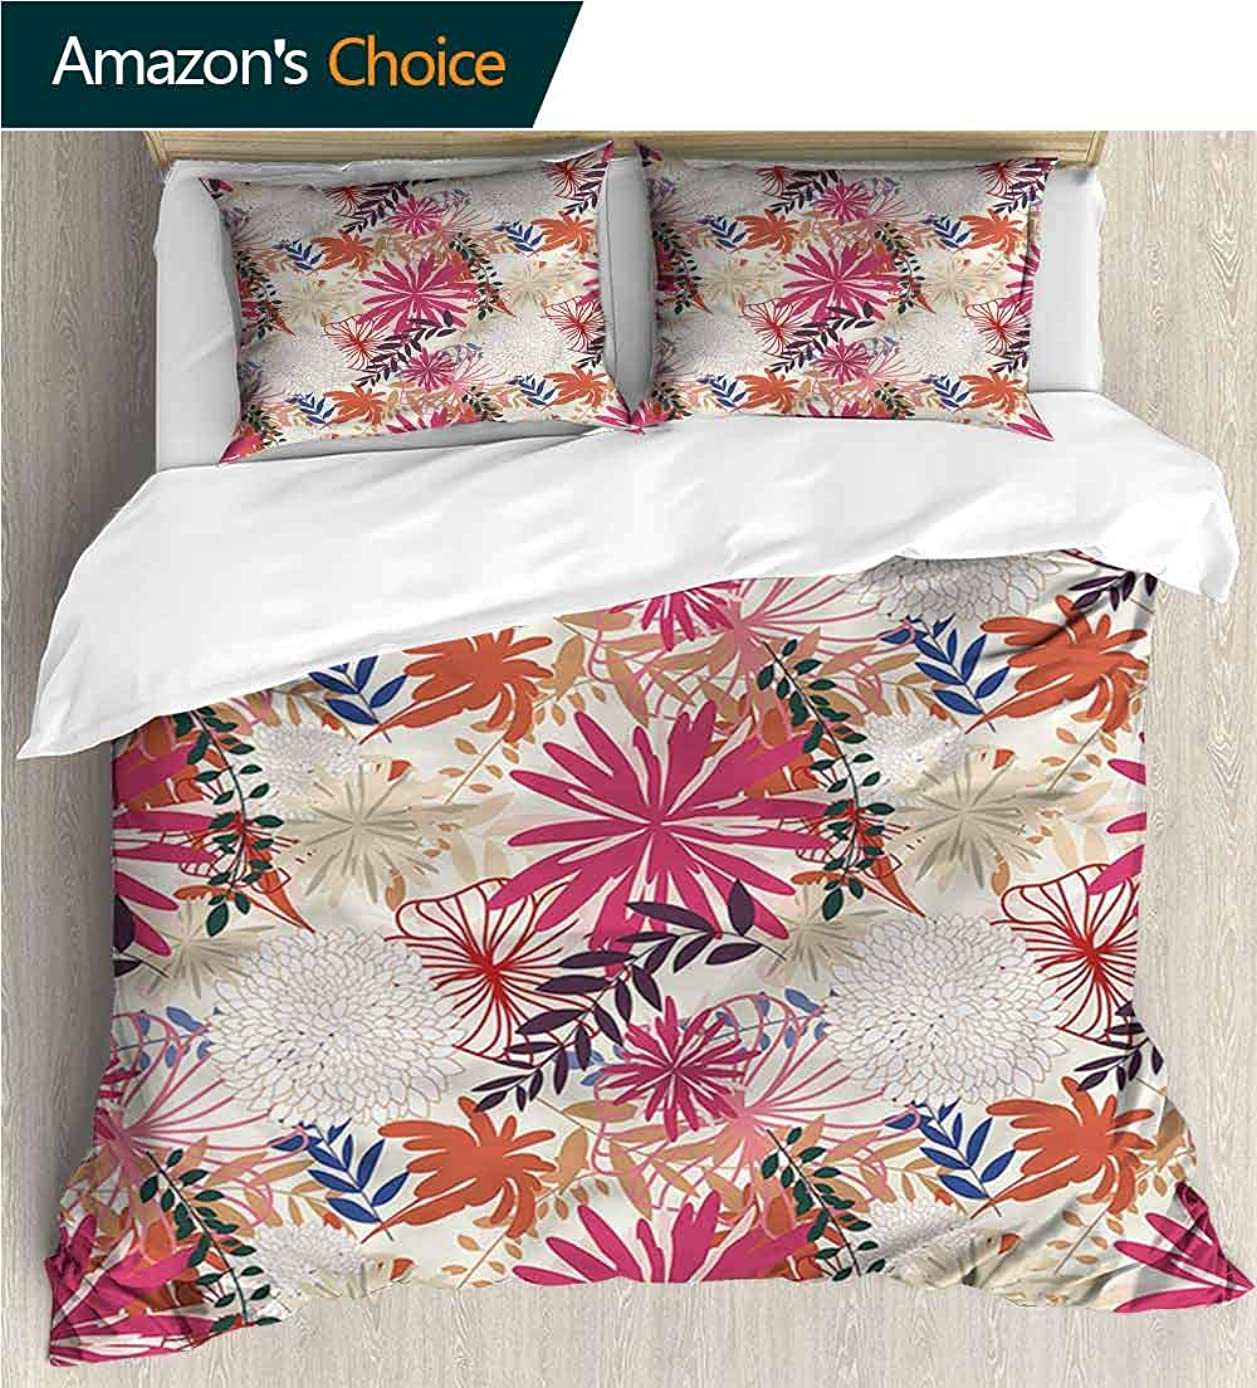 Home 3 Piece Print Quilt Set,Box Stitched,Soft,Breathable,Hypoallergenic,Fade Resistant Patterned Technique King Quilt Set-Floral Flourishing Vibrant Flowers (80